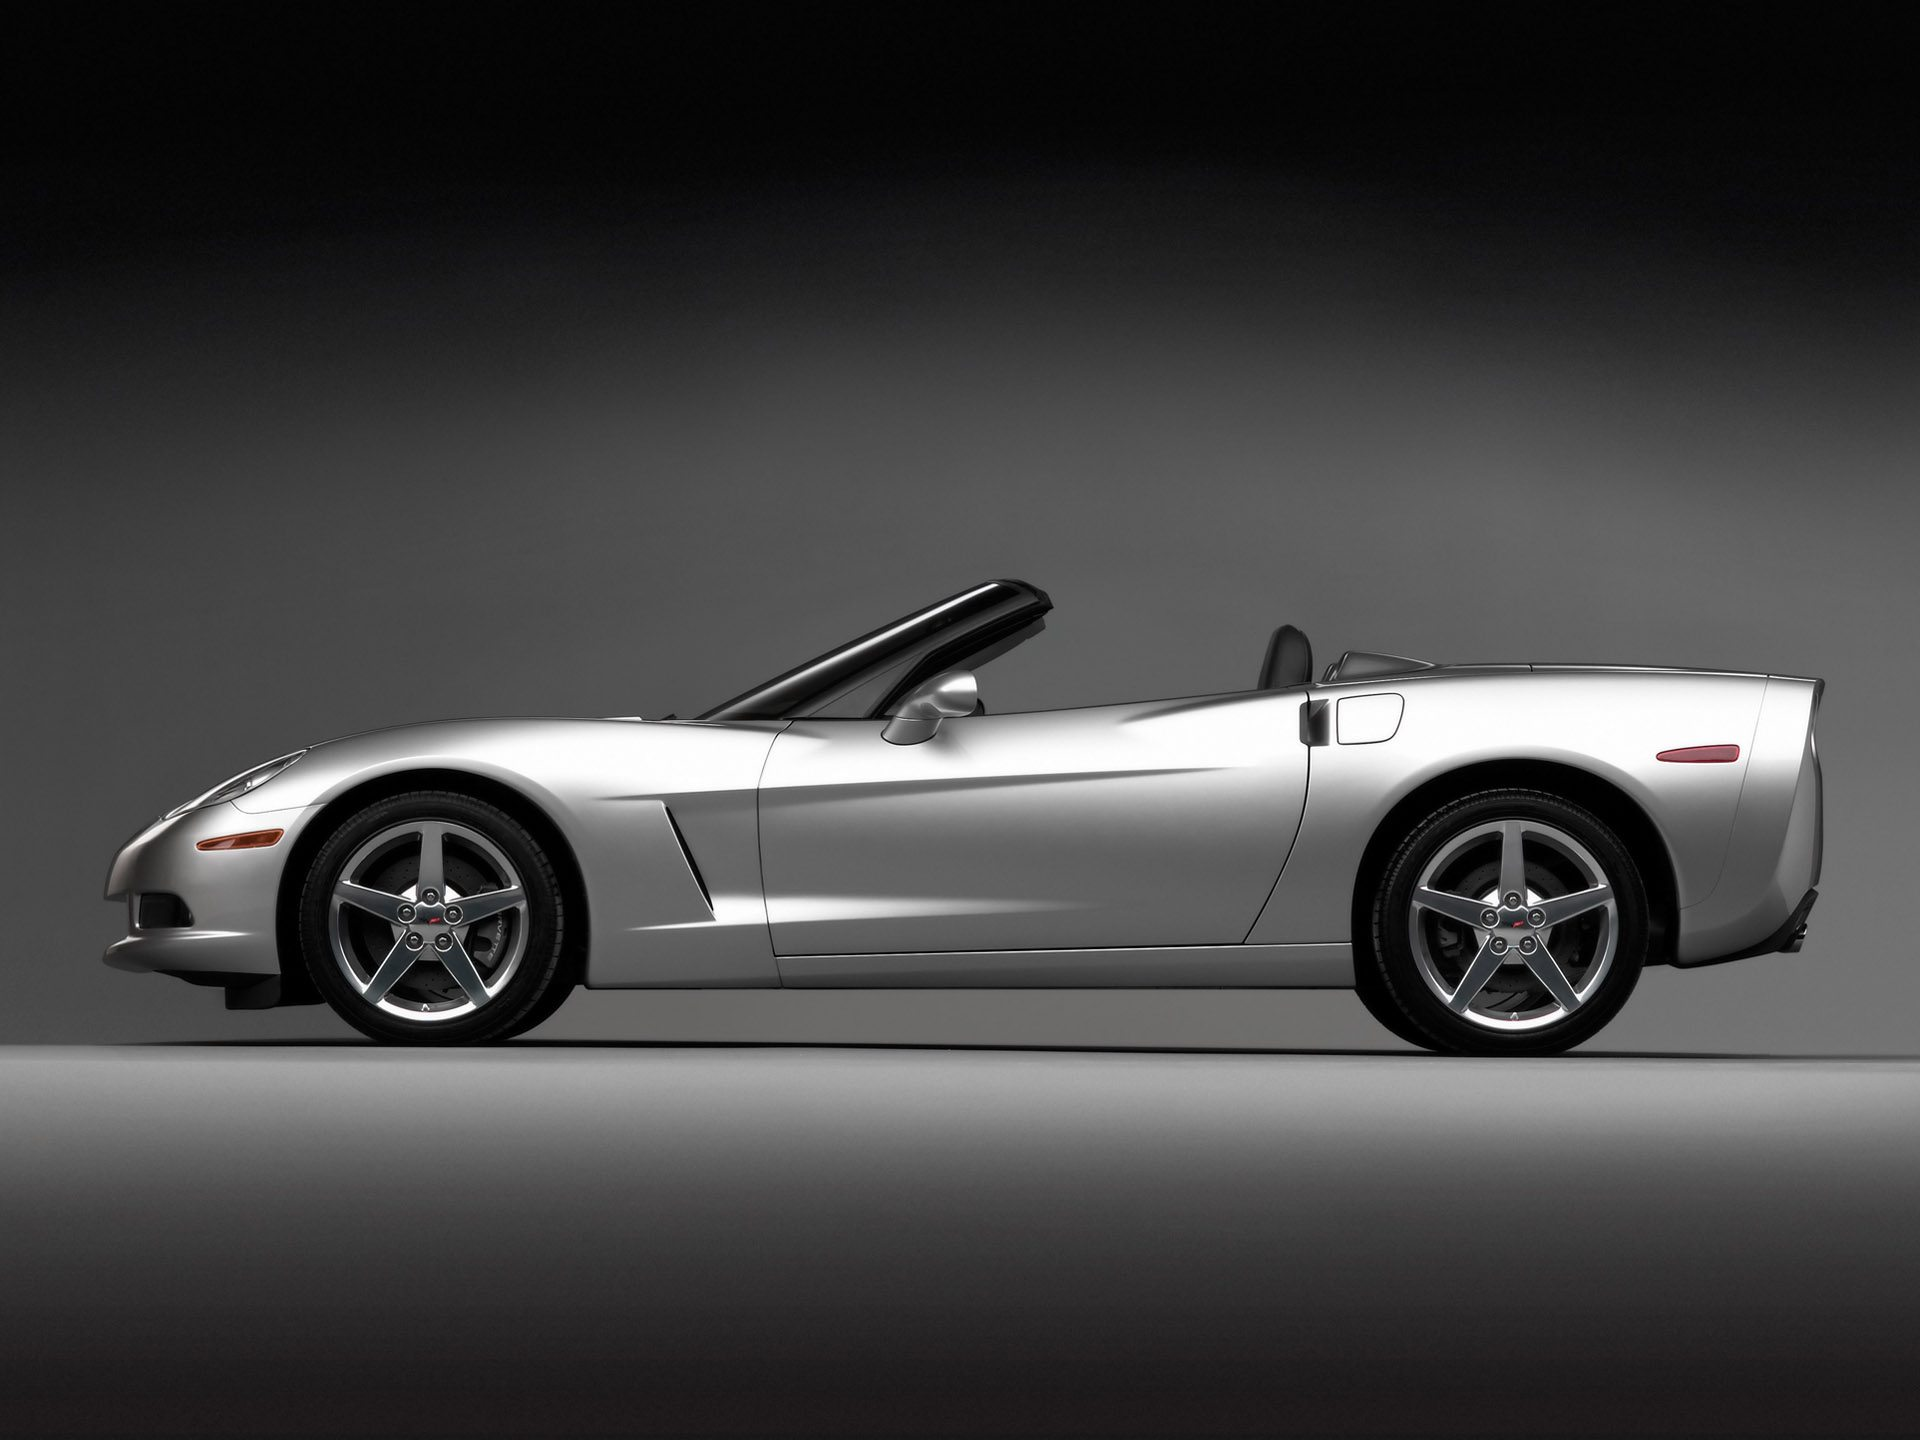 The 2005 Corvette Convertible Was More User Friendly With Options Like A Top Image Courtesy Of Gm Media